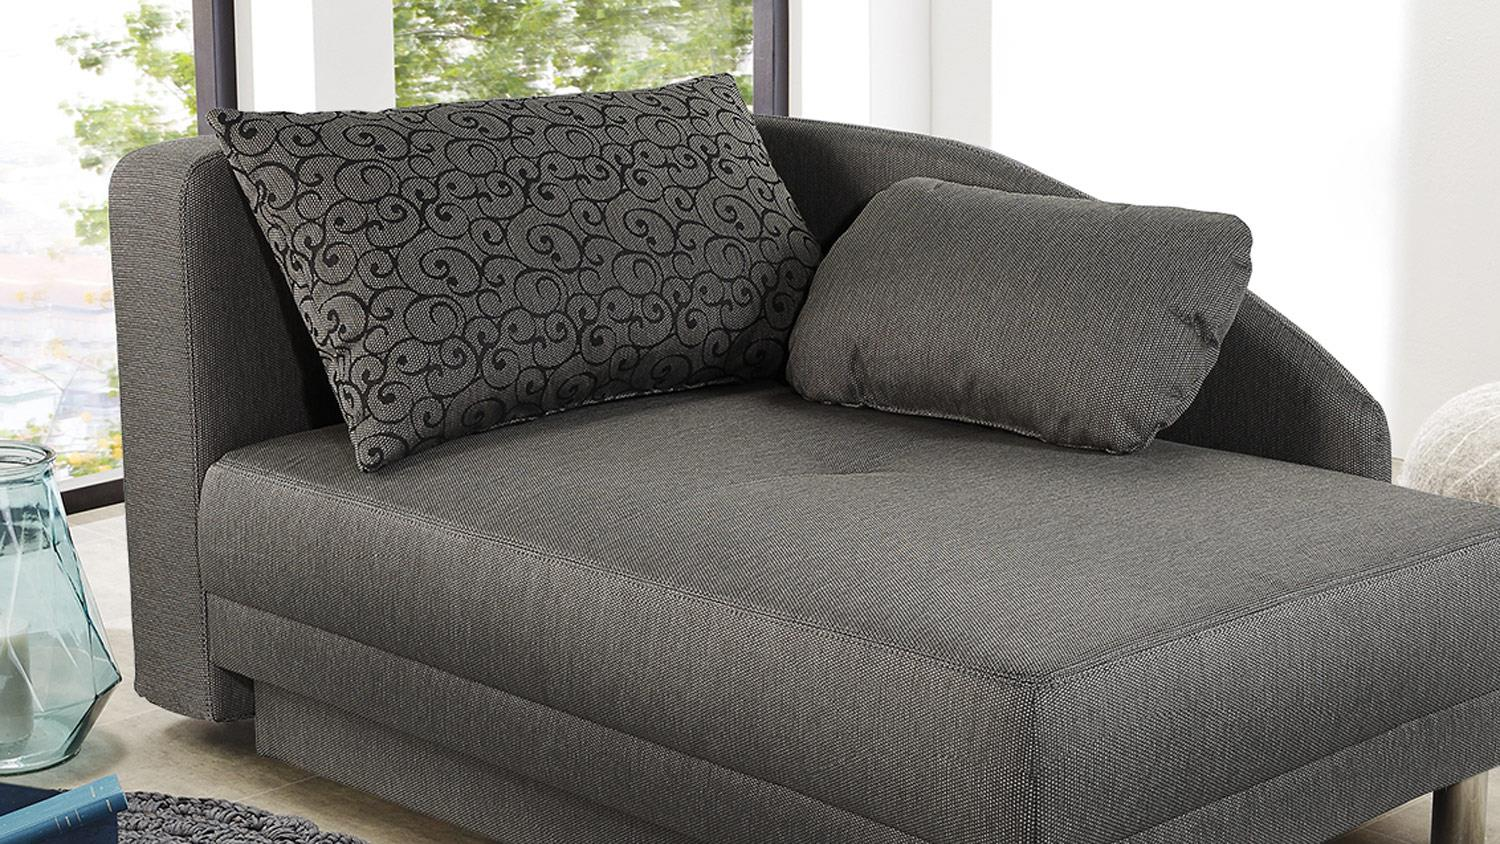 Sessel Roy Recamiere Roy Sofa Funktionssofa In Braun Schlaffunktion